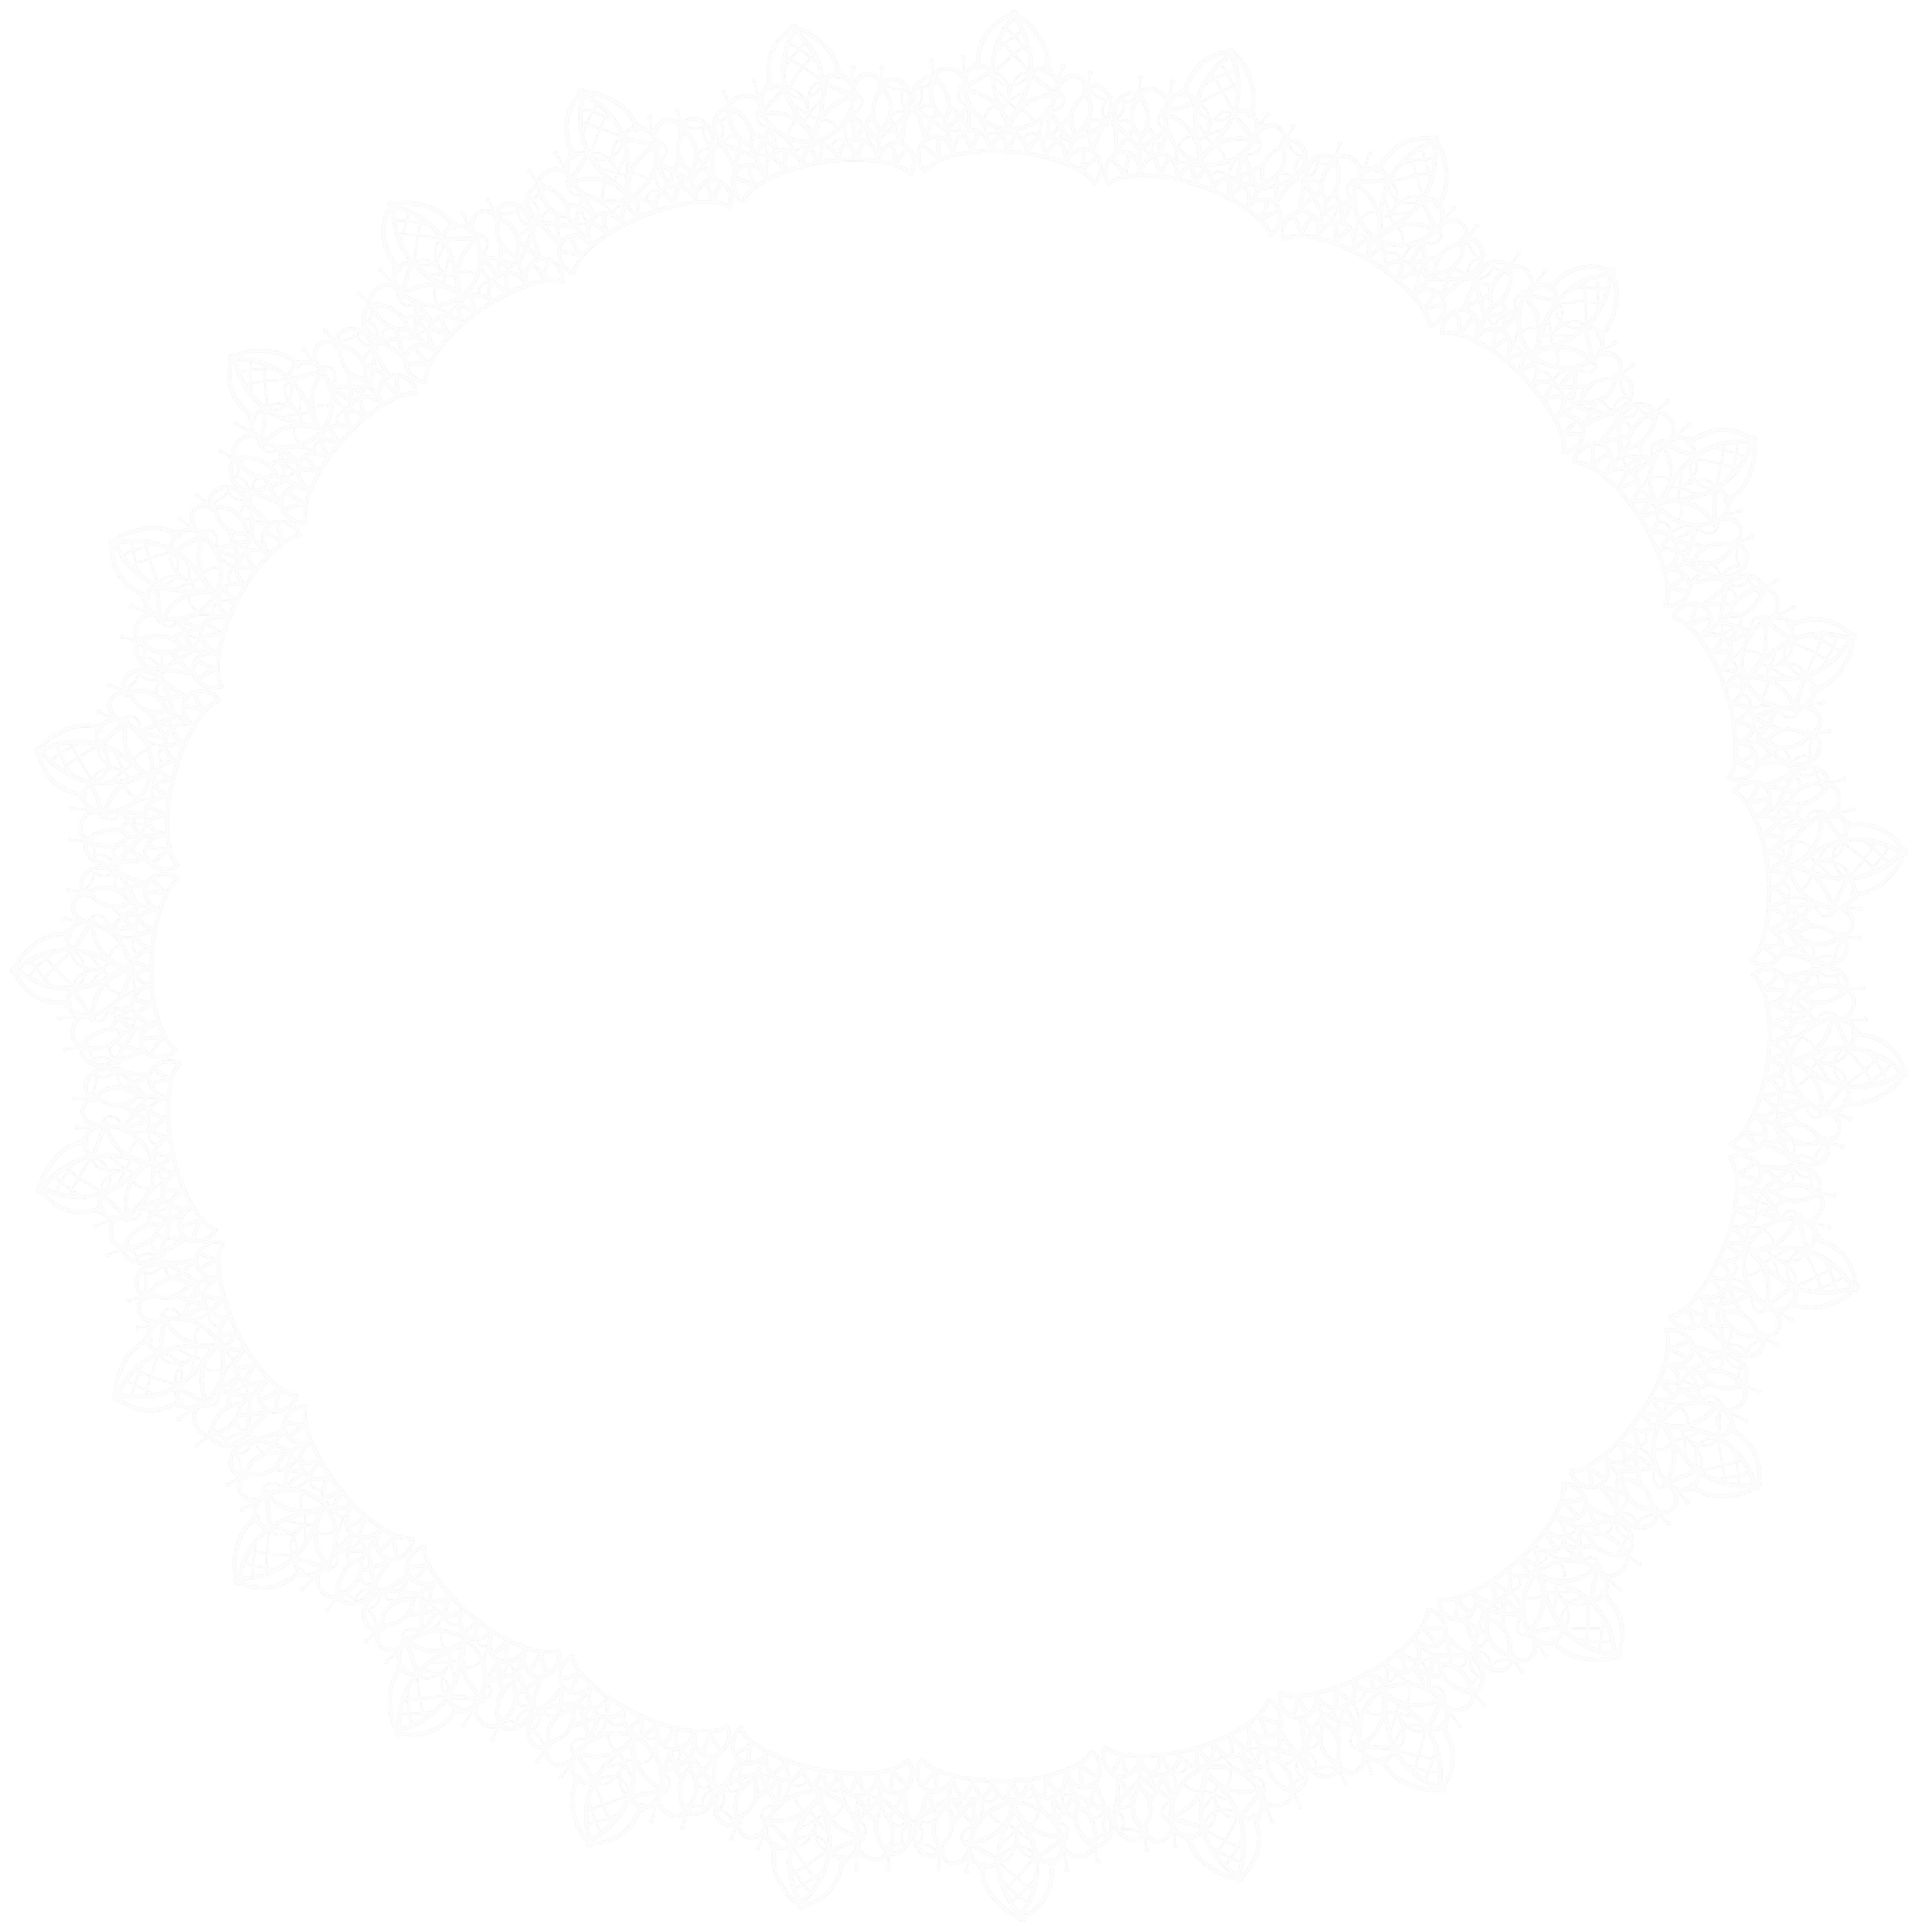 White lace border png. Black and angle point